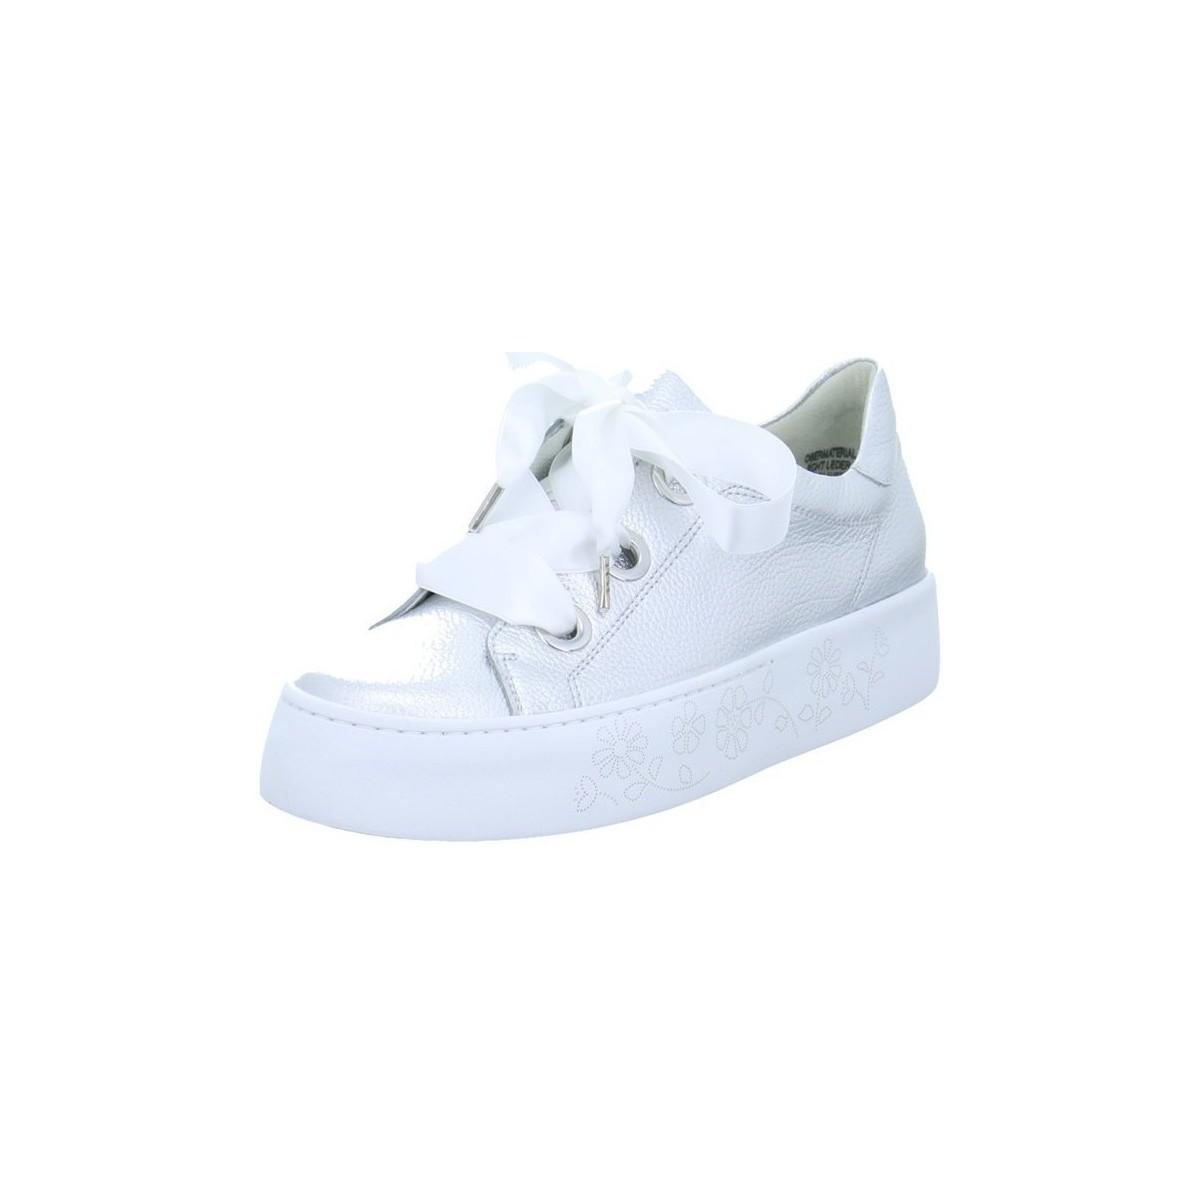 Shopping Online Outlet Sale Paul Green 4627042 women's Shoes (Trainers) in New Discount Visa Payment Cheap New 8ce0Nmxs5g